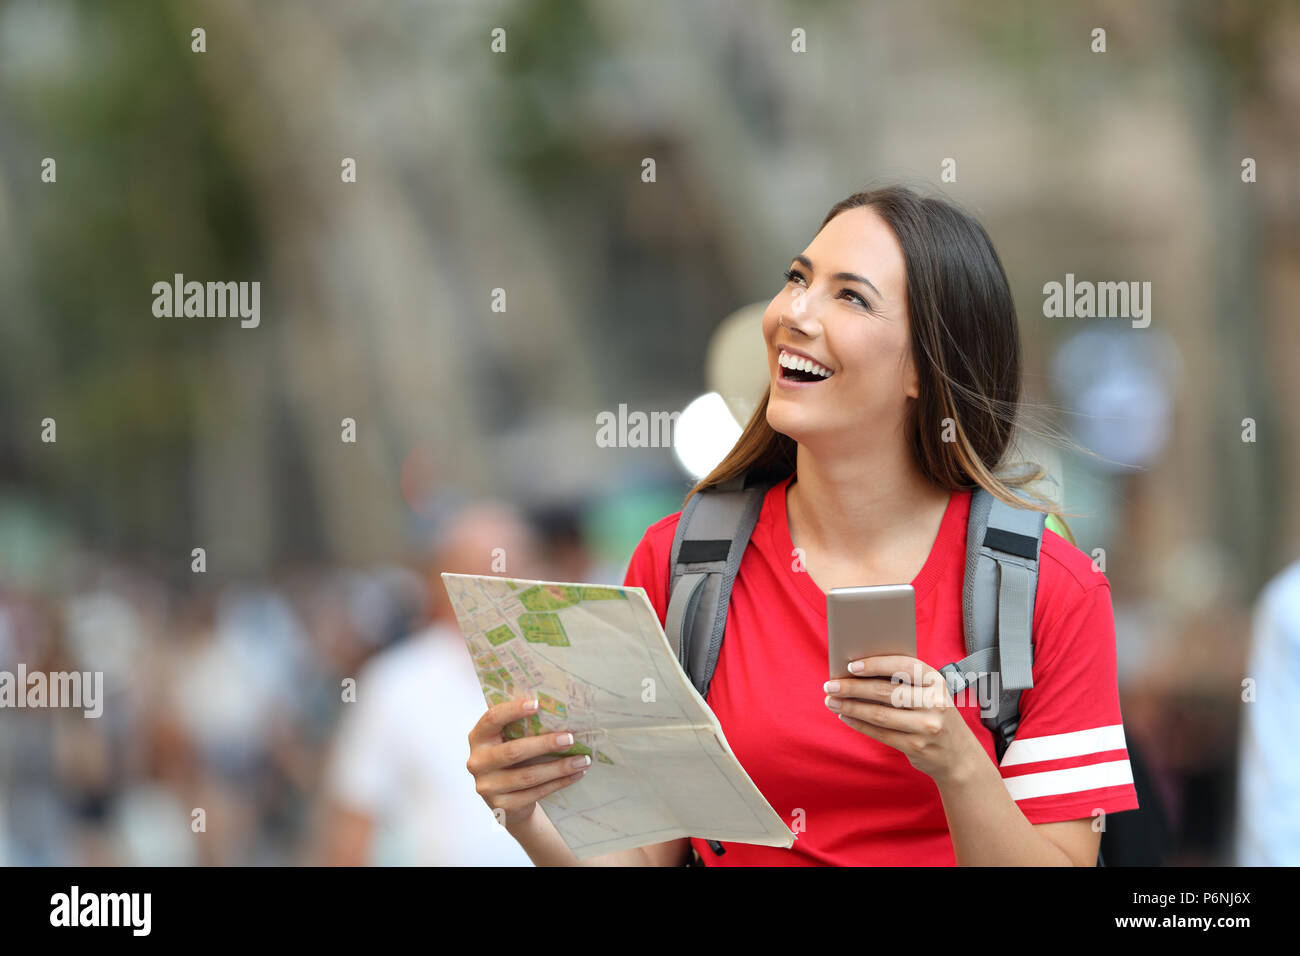 Teen tourist holding a paper guide and a smart phone looking above on the street - Stock Image